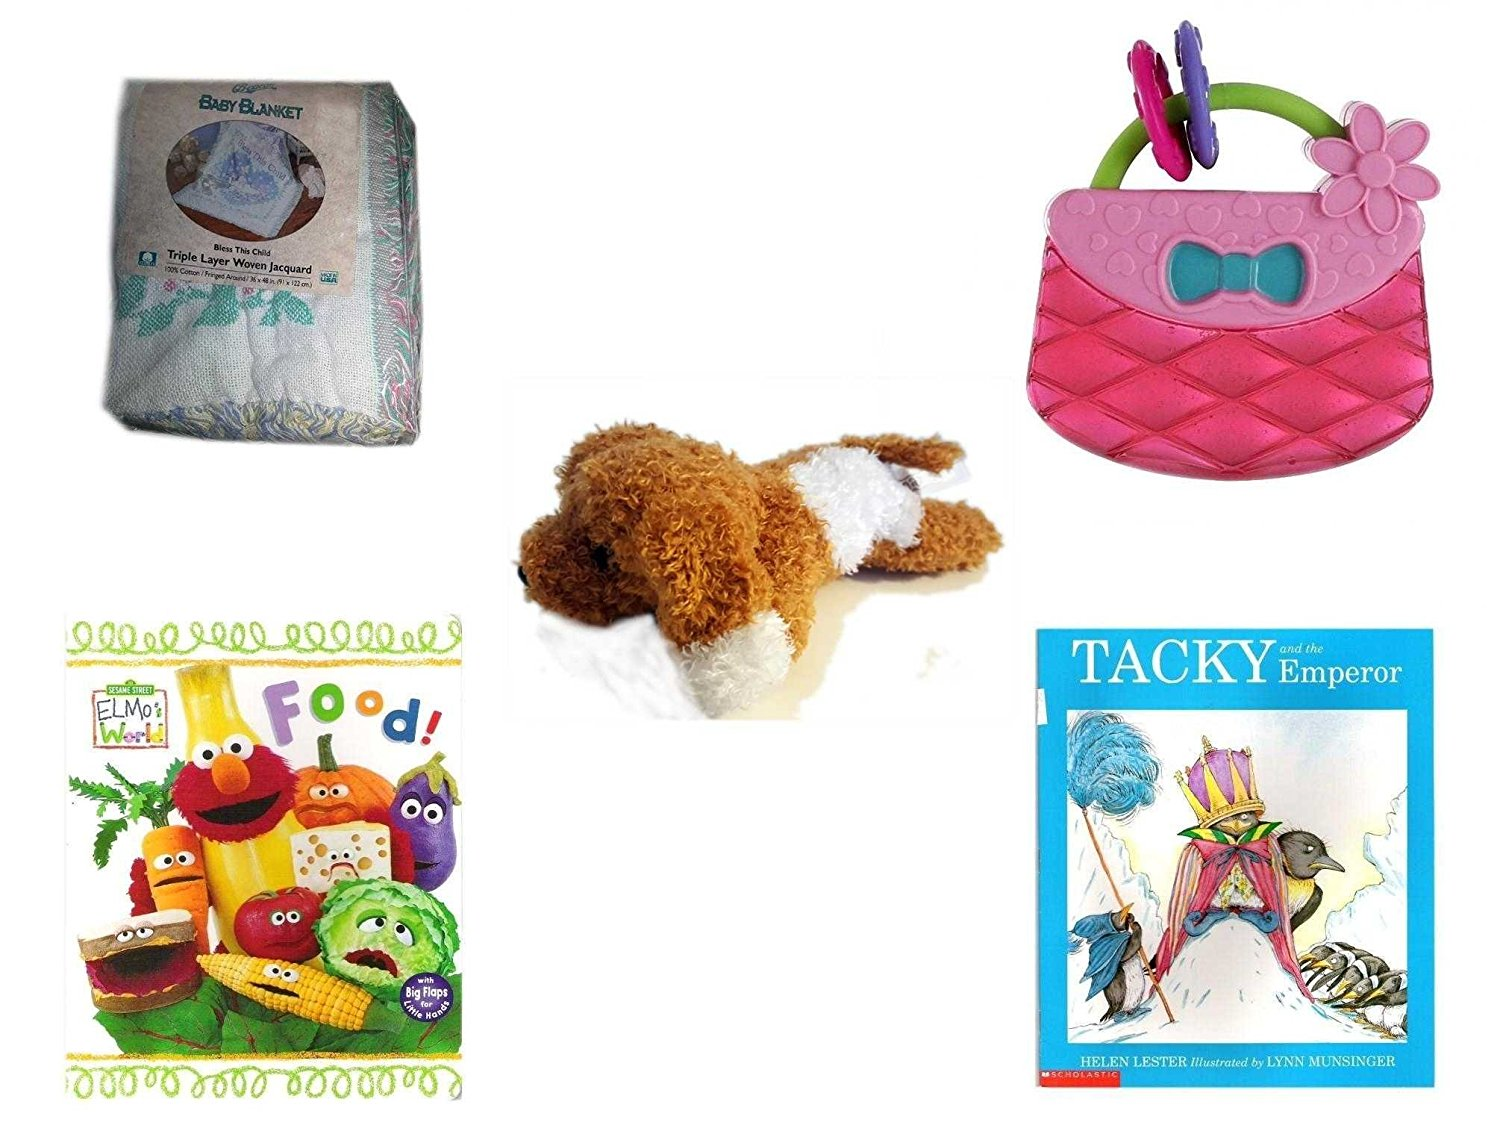 """Children's Gift Bundle - Ages 0-2 [5 Piece] - Baby Blanket """"Bless This Child"""" Triple Layer Woven Jaquard - Bright Starts Pretty in Pink Carry Teethe Purse - Amazimals Brown & White Puppy - Elmo's Wo"""